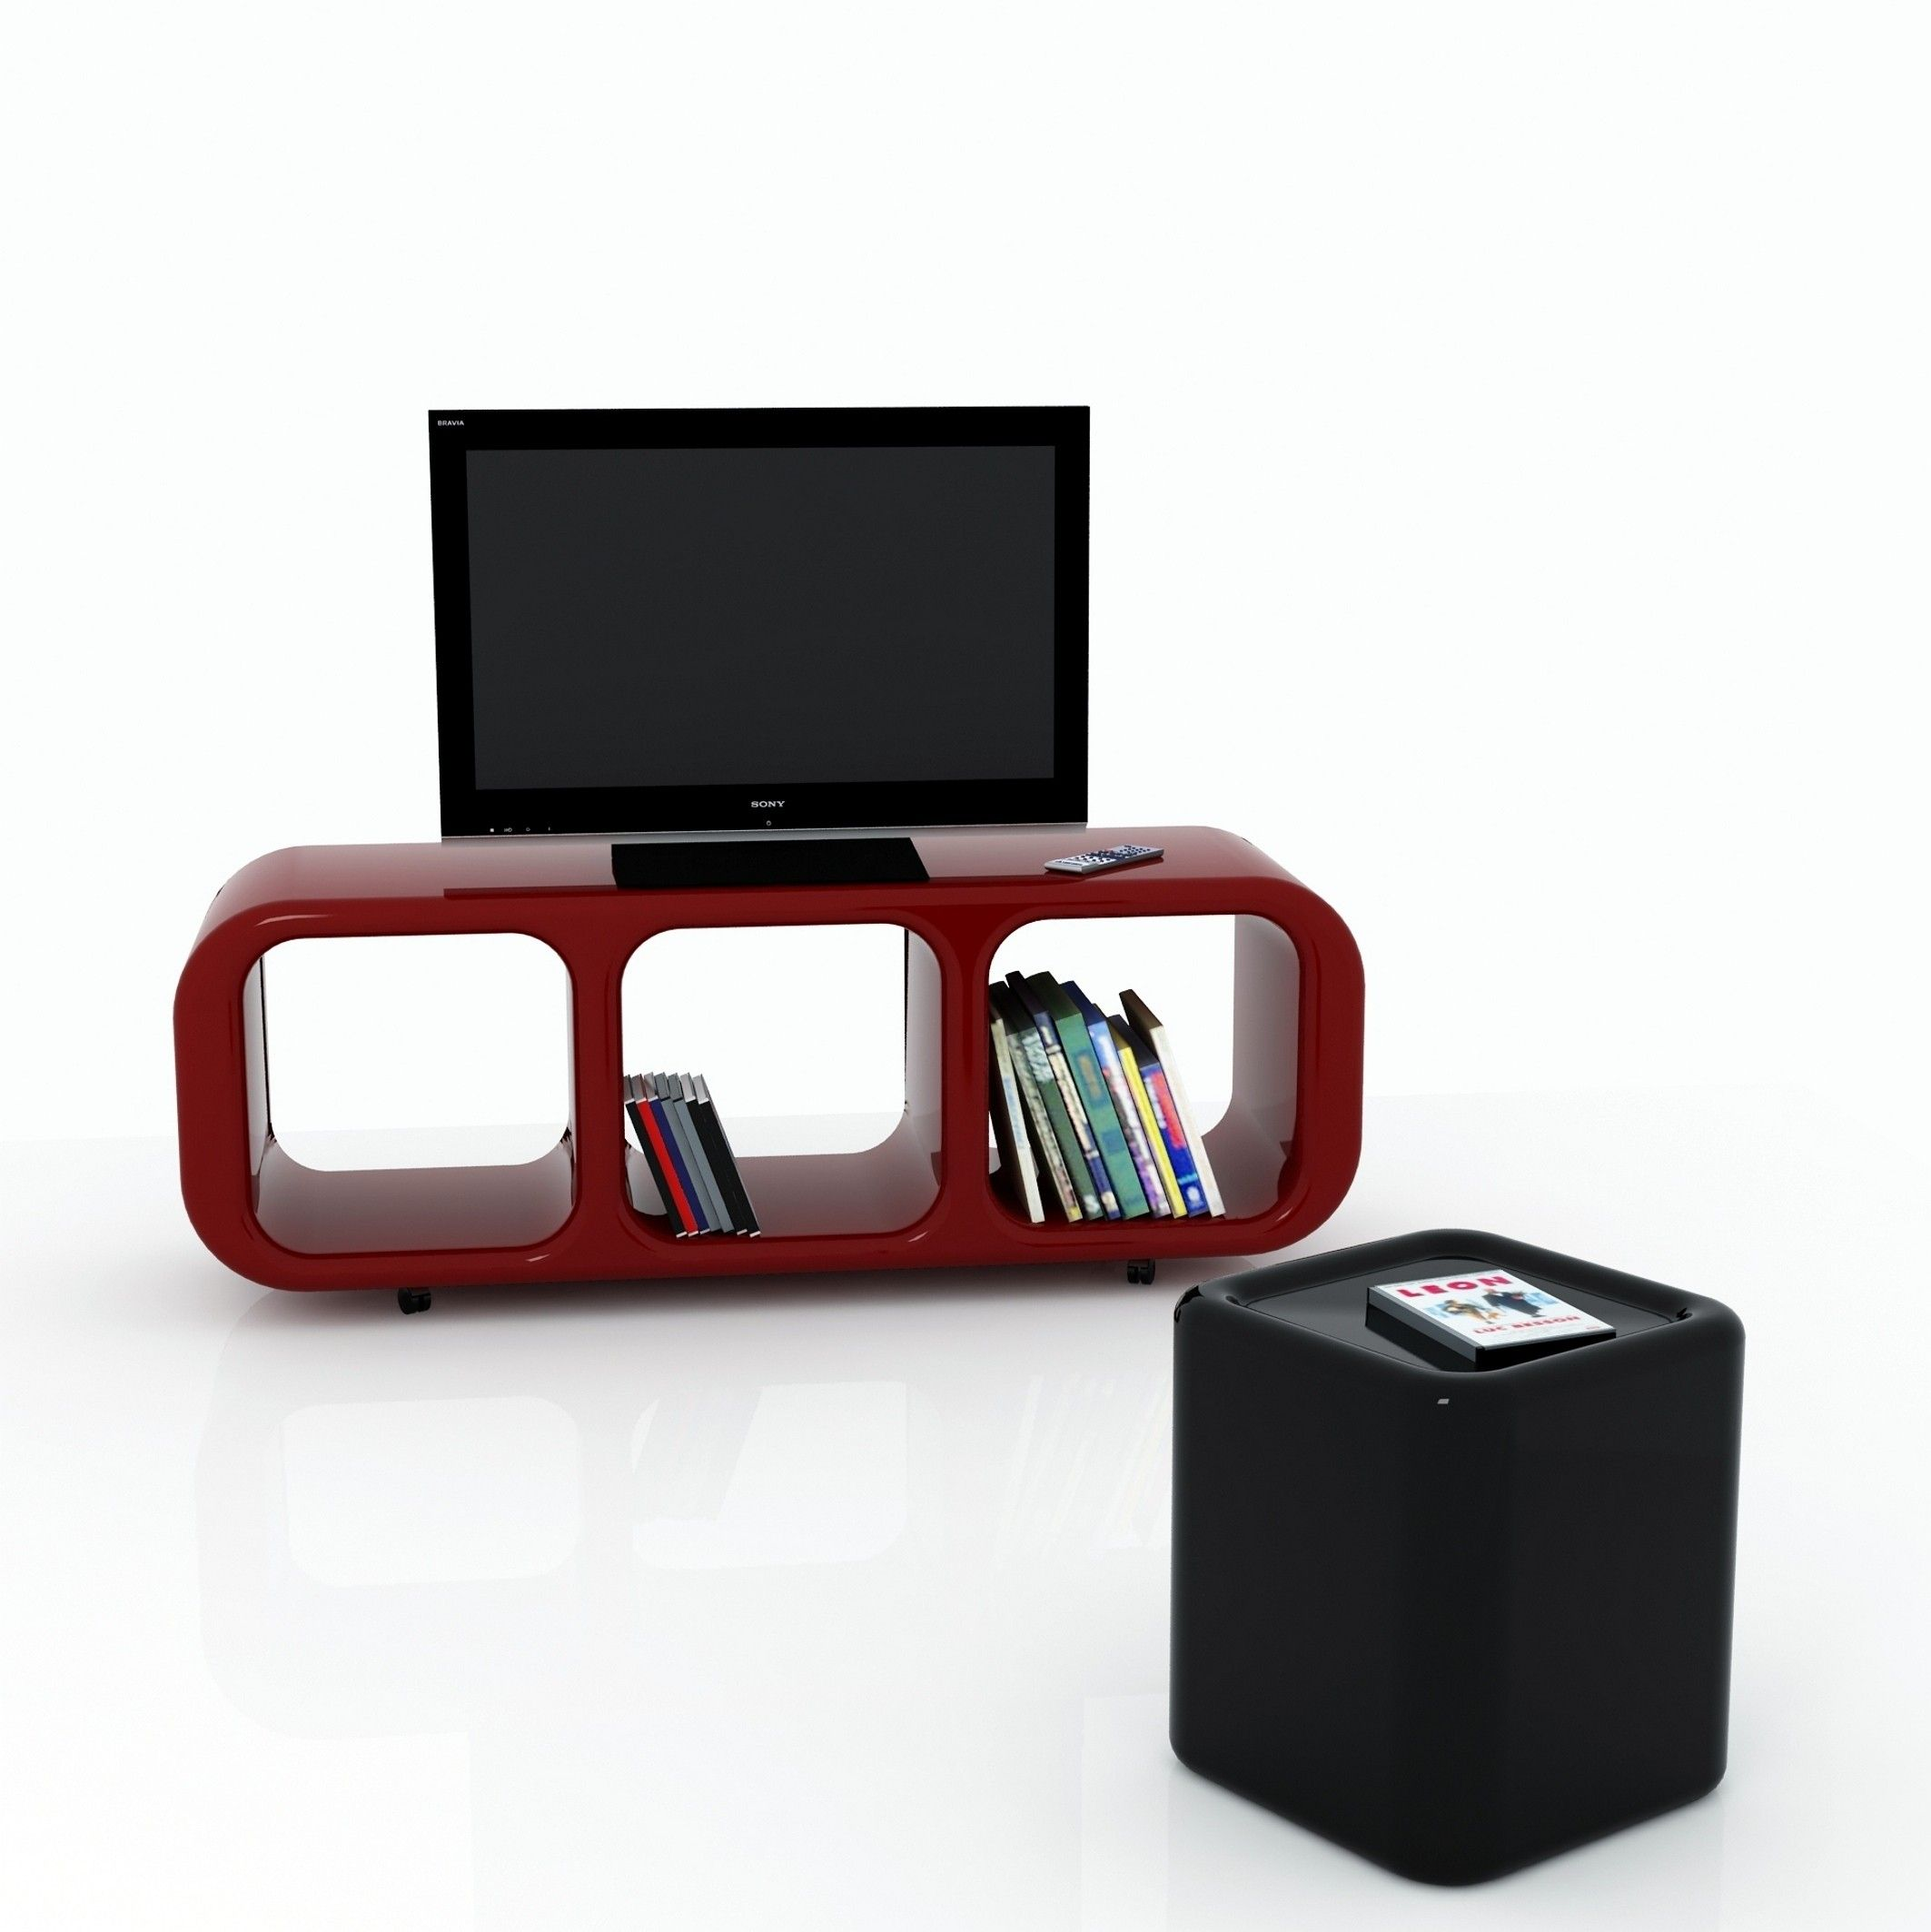 Mobile porta tv eracle design moderno su ruote in resina for Mobile porta tv lago